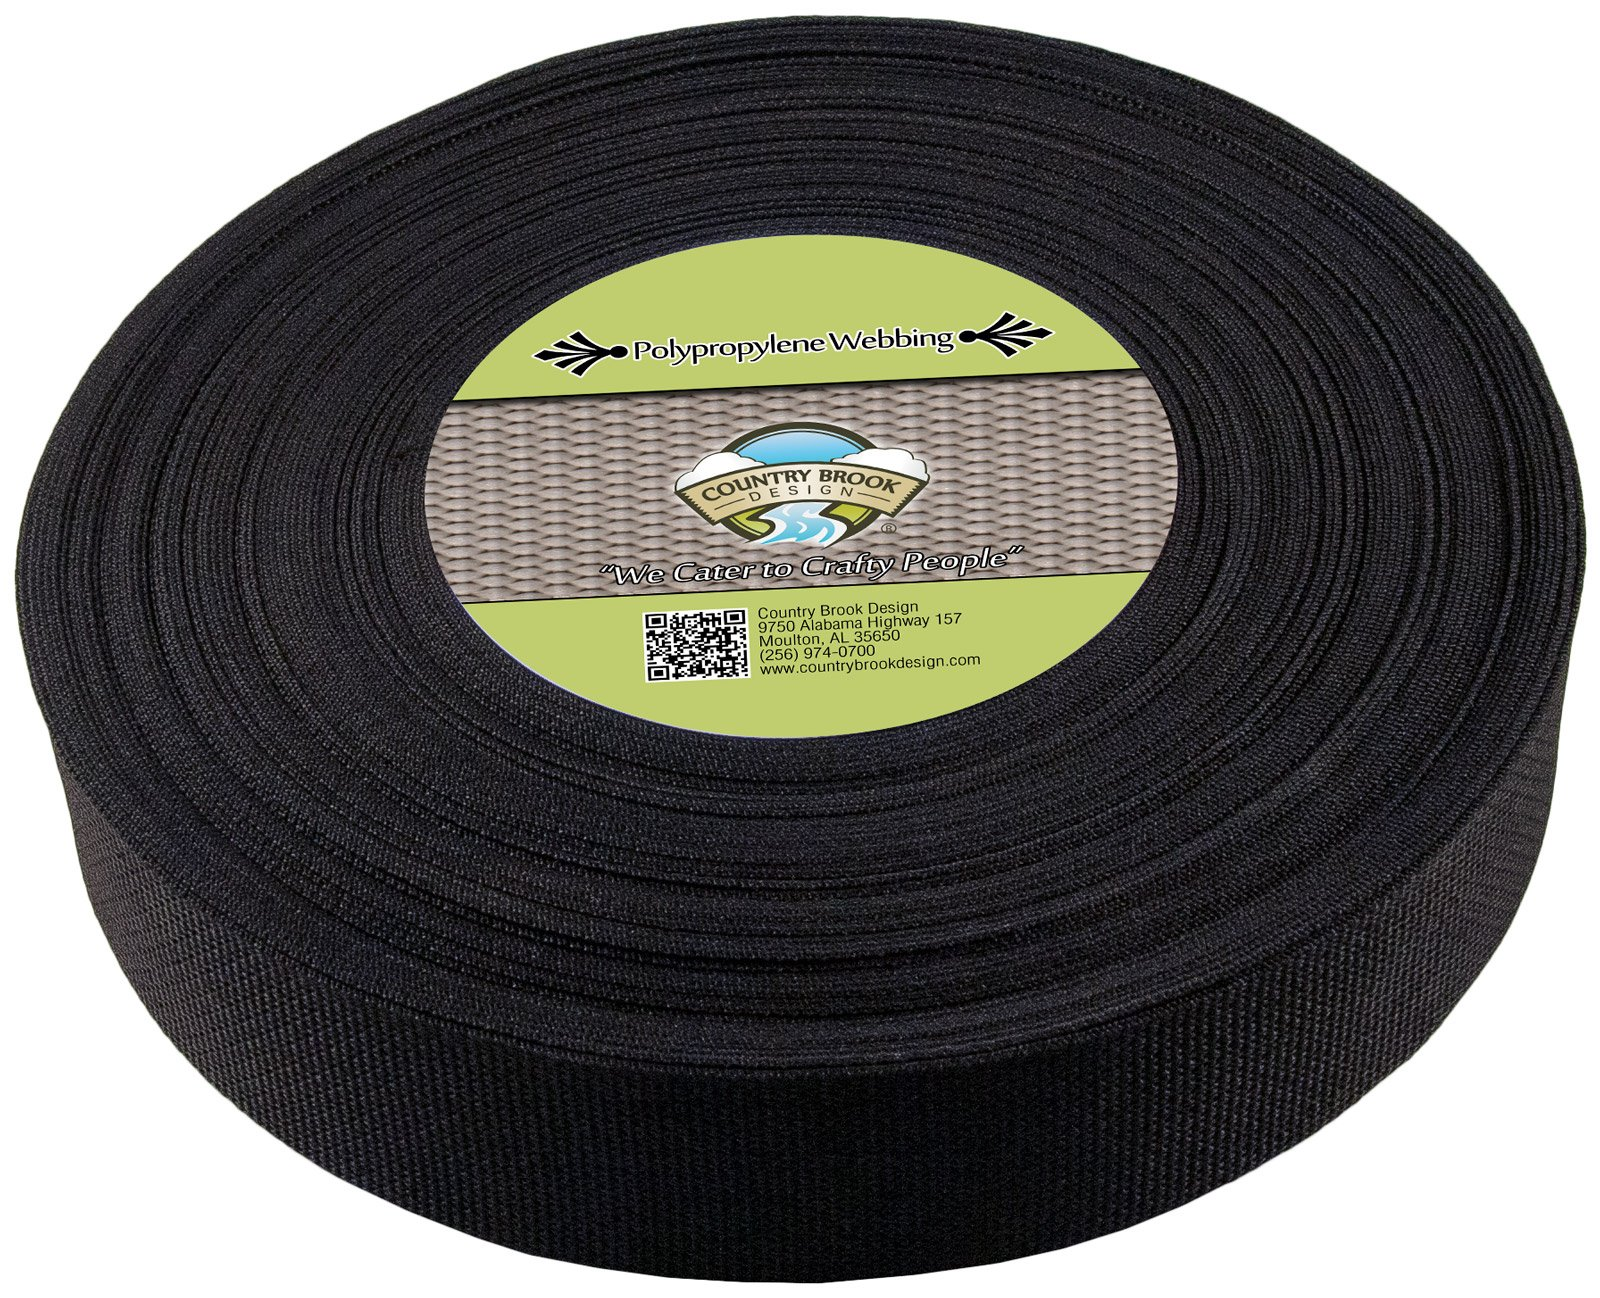 Country Brook Design2 Inch Black Heavy Polypropylene (Polypro) Webbing, 50 Yards by Country Brook DesignÂ